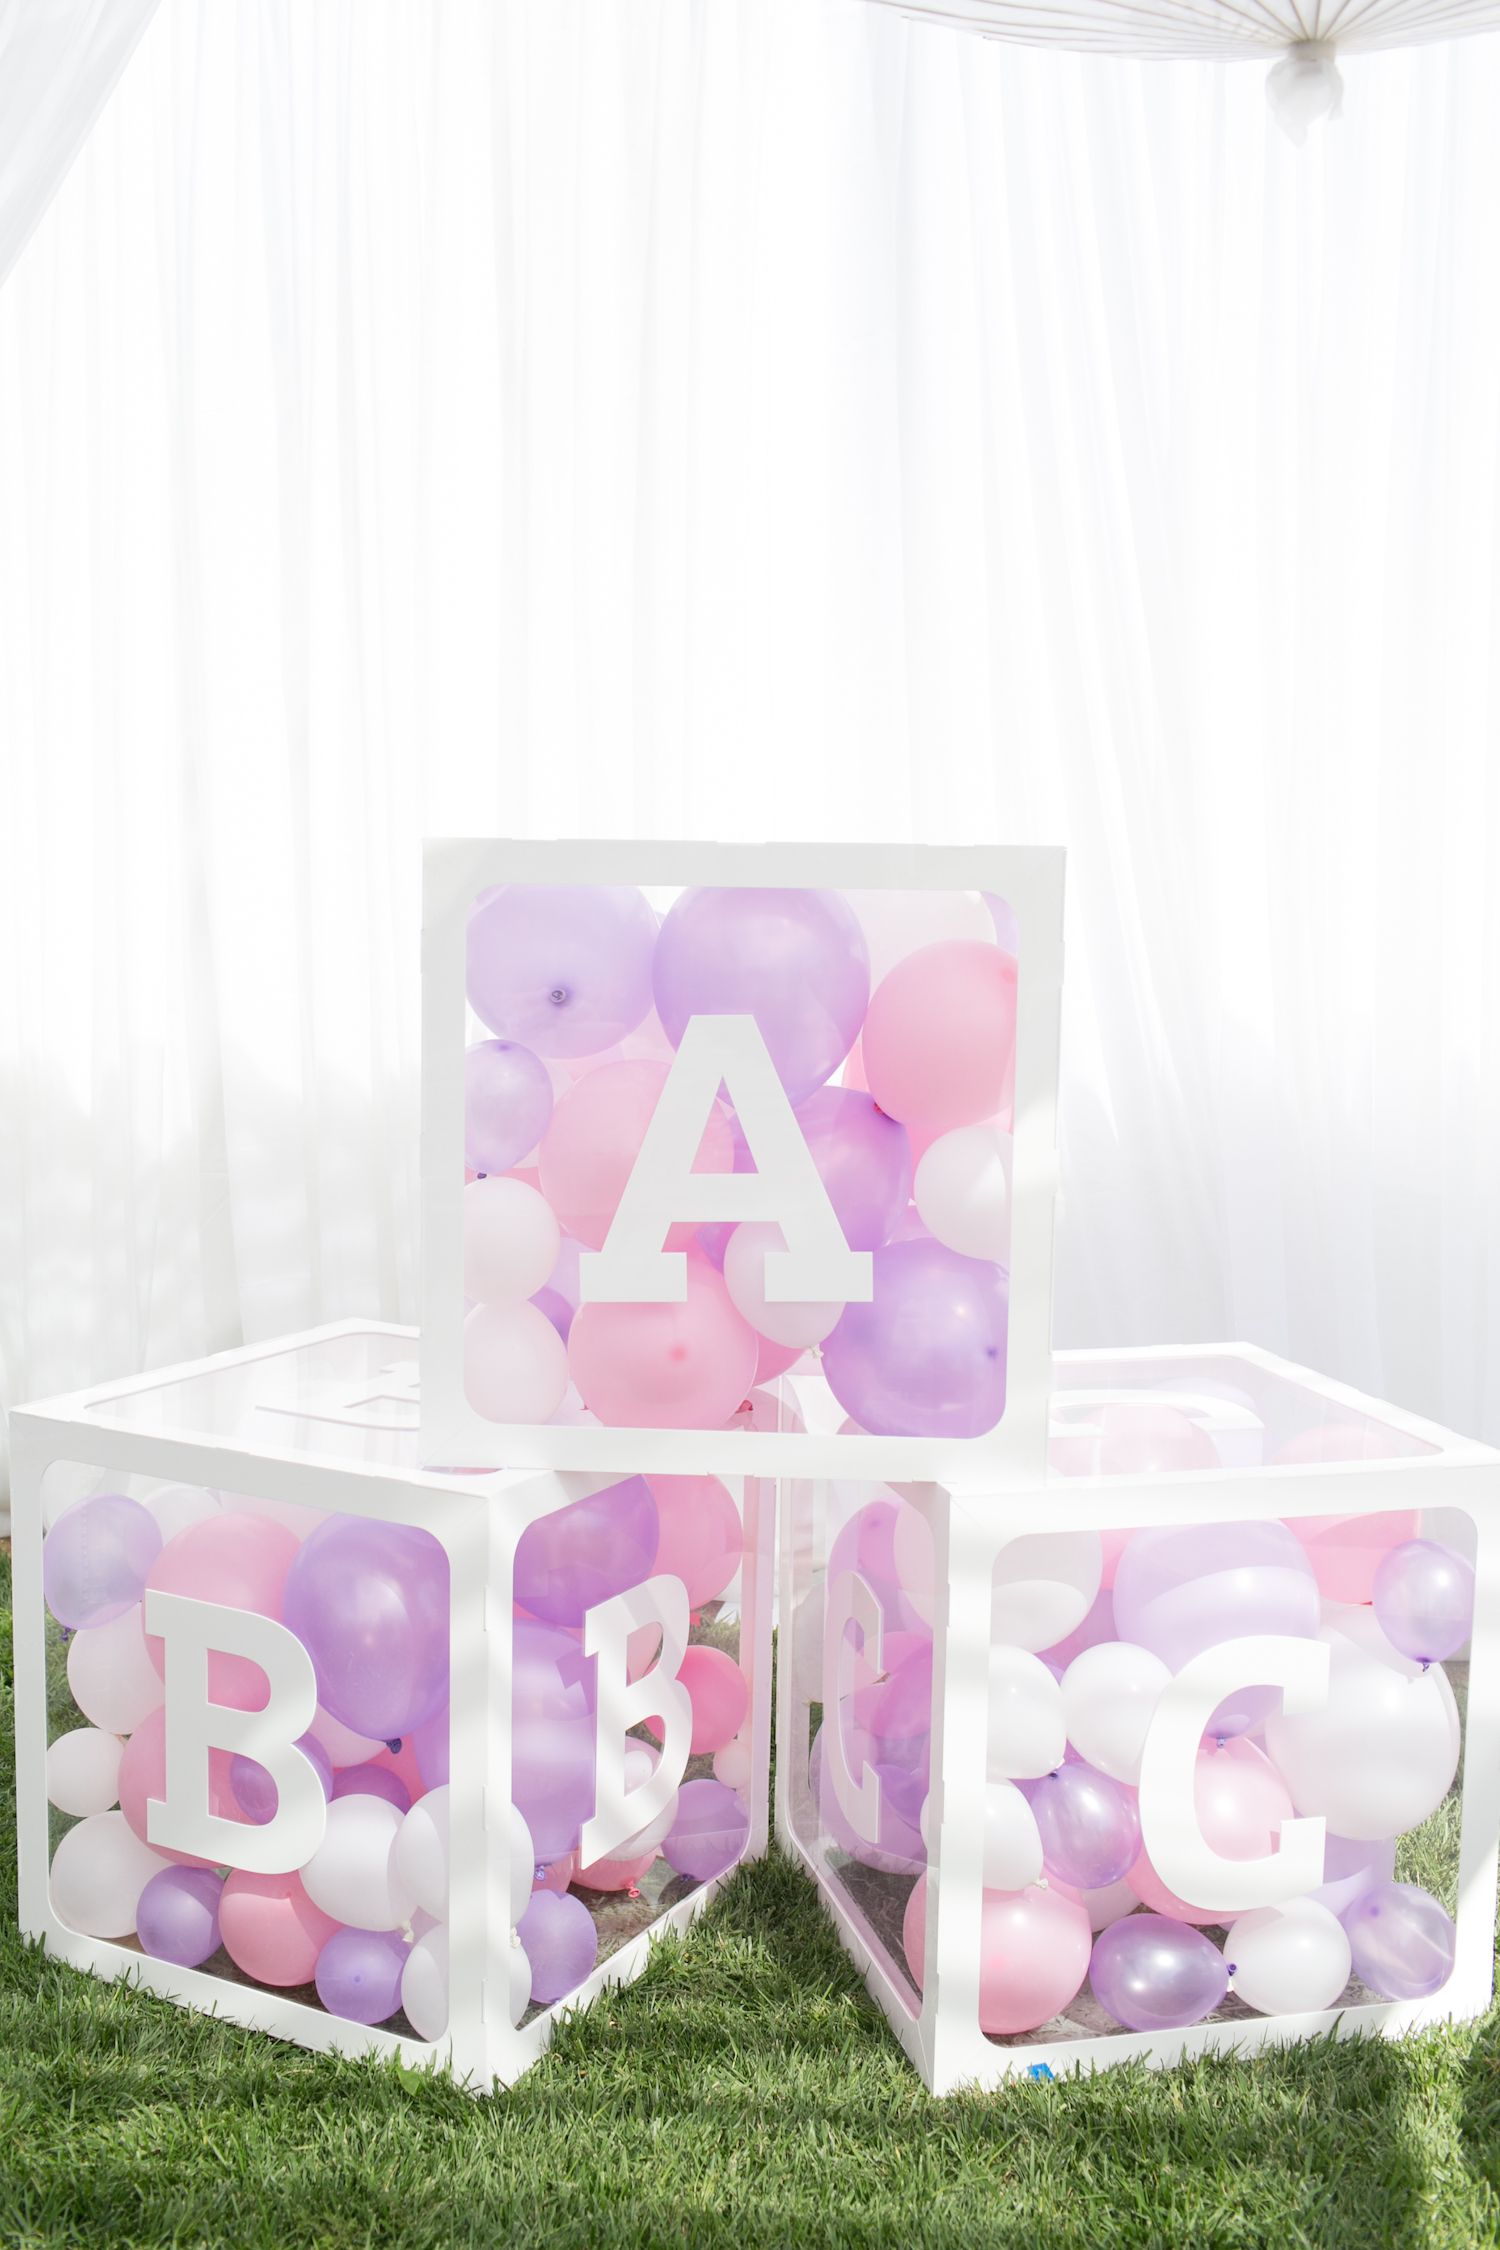 Dreamy Pink and Lavender Baby Shower by A Good Affair - Perfete